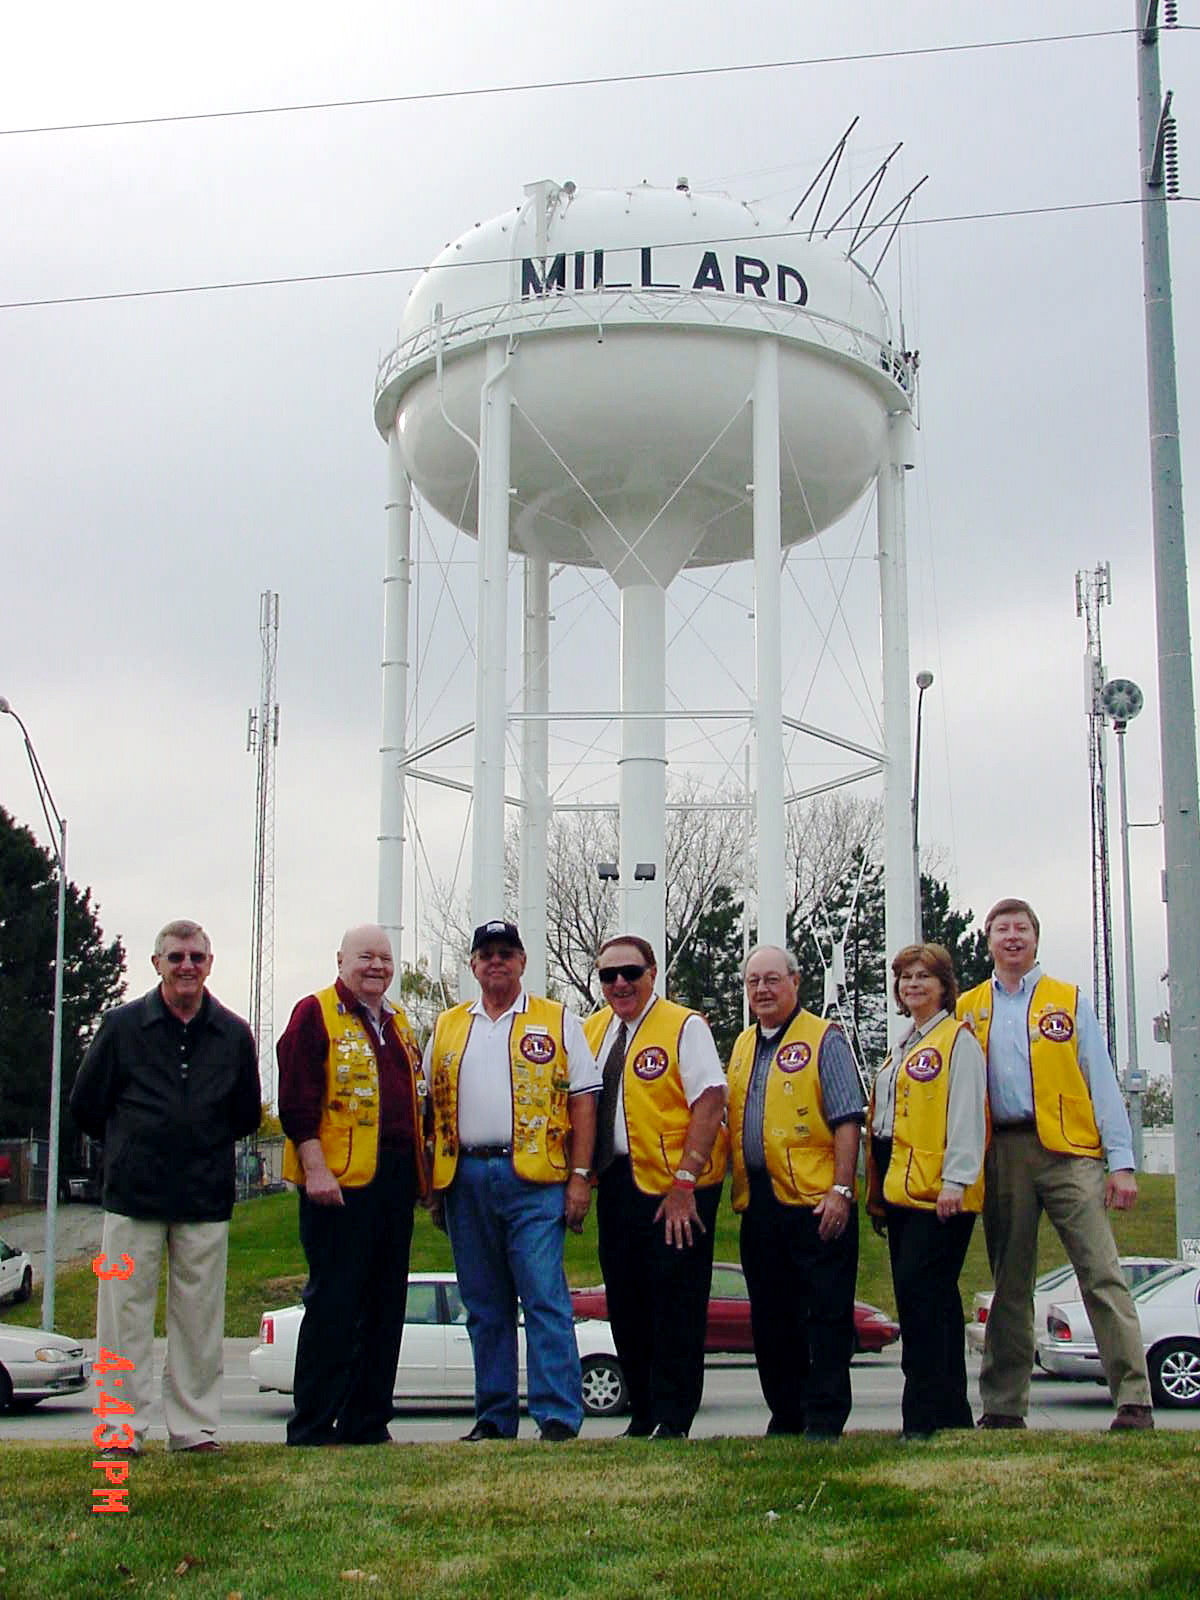 Photos from Millard Lions Club history.  Pictured here is the big reveal of returning MILLARD to the water tower in 2005.  The Millard Lions Club provide the lead gift to the Millard Business Association to get the ball rolling.